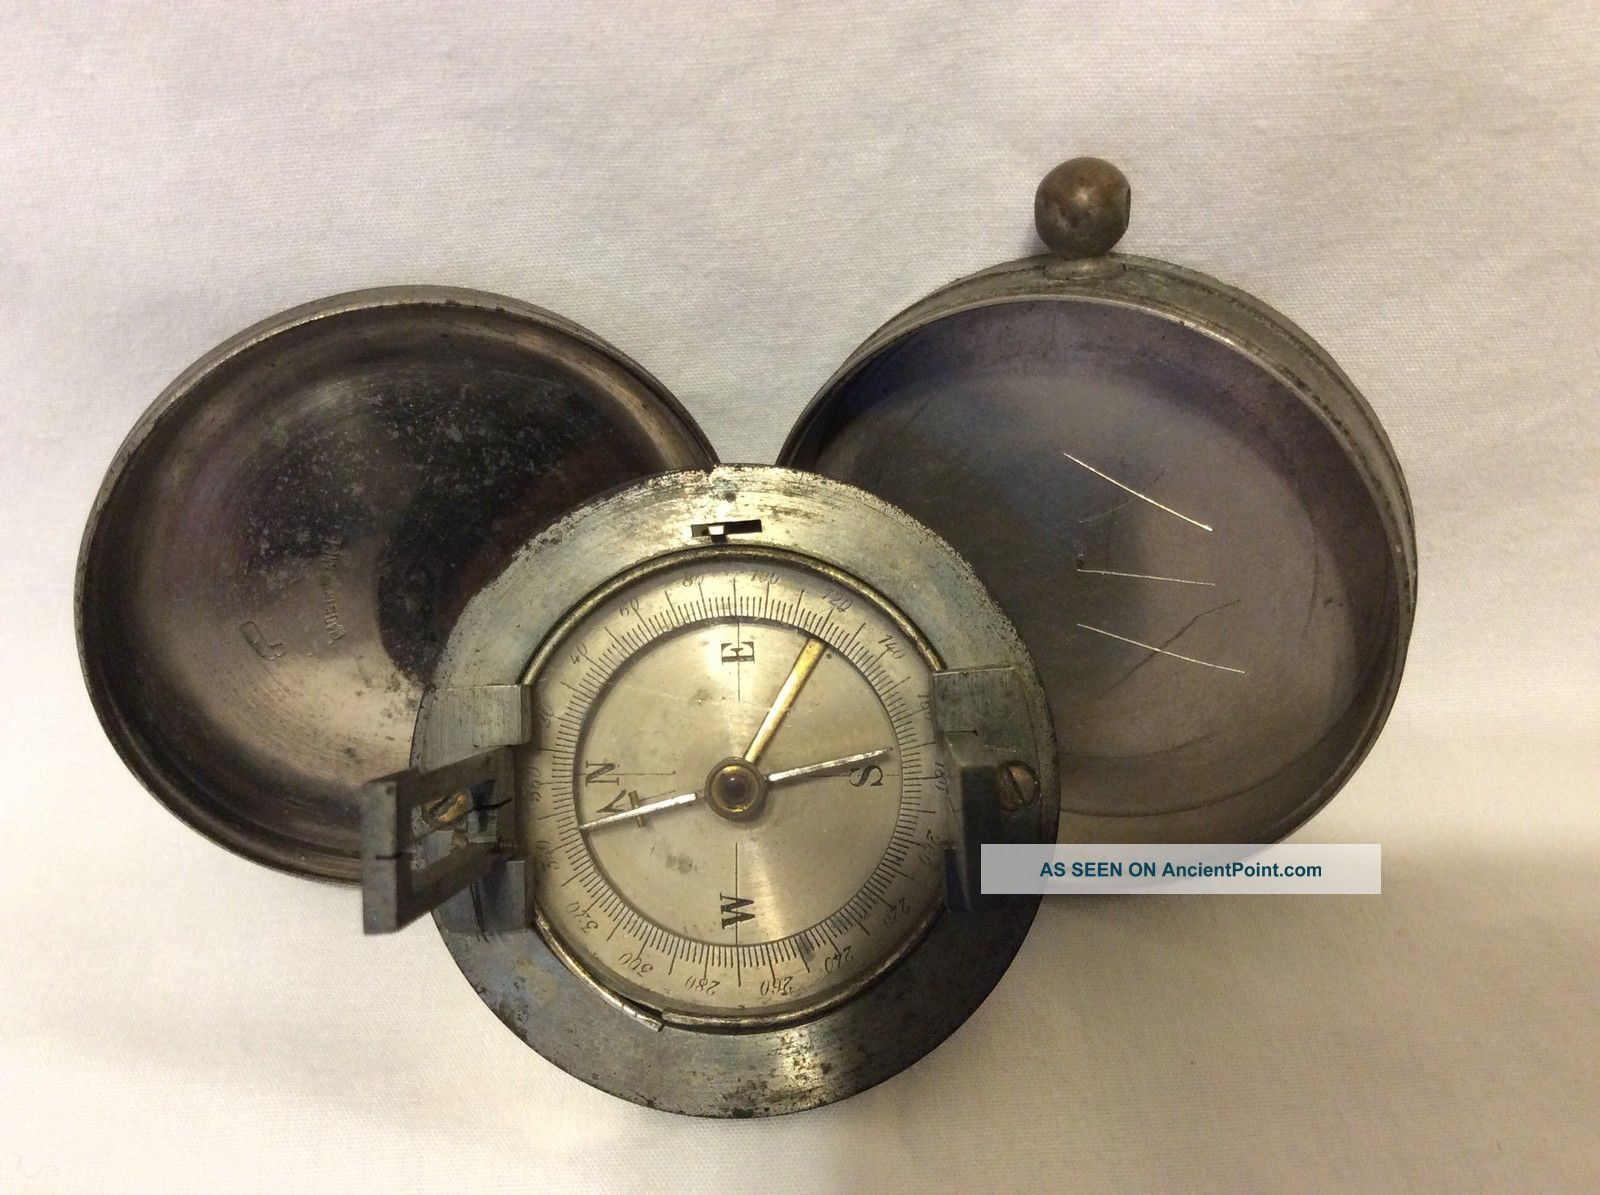 Vintage Pocket Compass With Integral Sight & Case - France Compasses photo